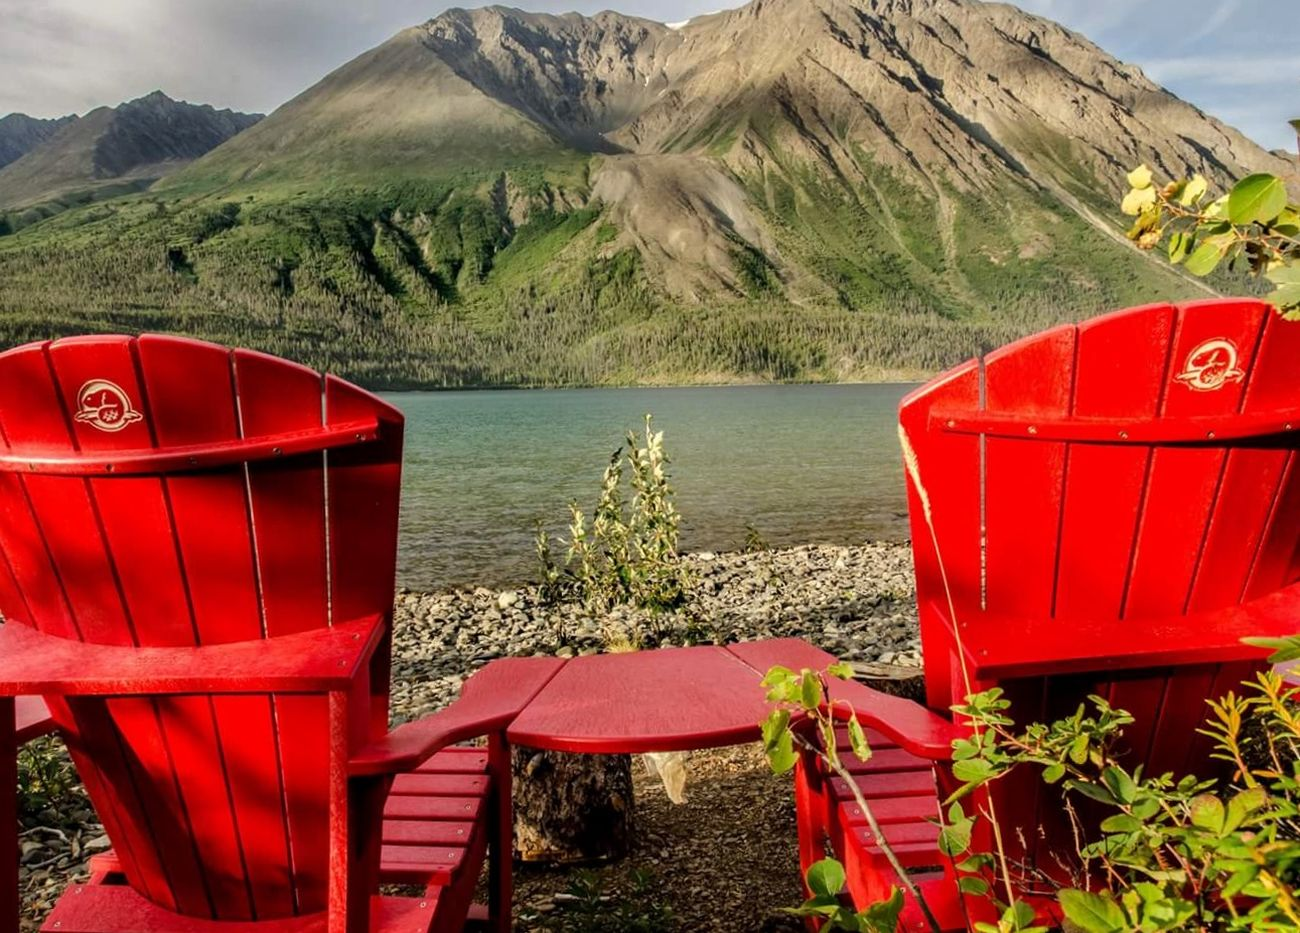 Summer 2015 view of the Kings Throne in Kluane National park Outdoors Nature Beauty In Nature Water - Collection NikonLife Canada Nikon D7000 Outdoor Photography Canada Coast To Coast Nature Mountain View Mountain Kluane National Park & Reserve